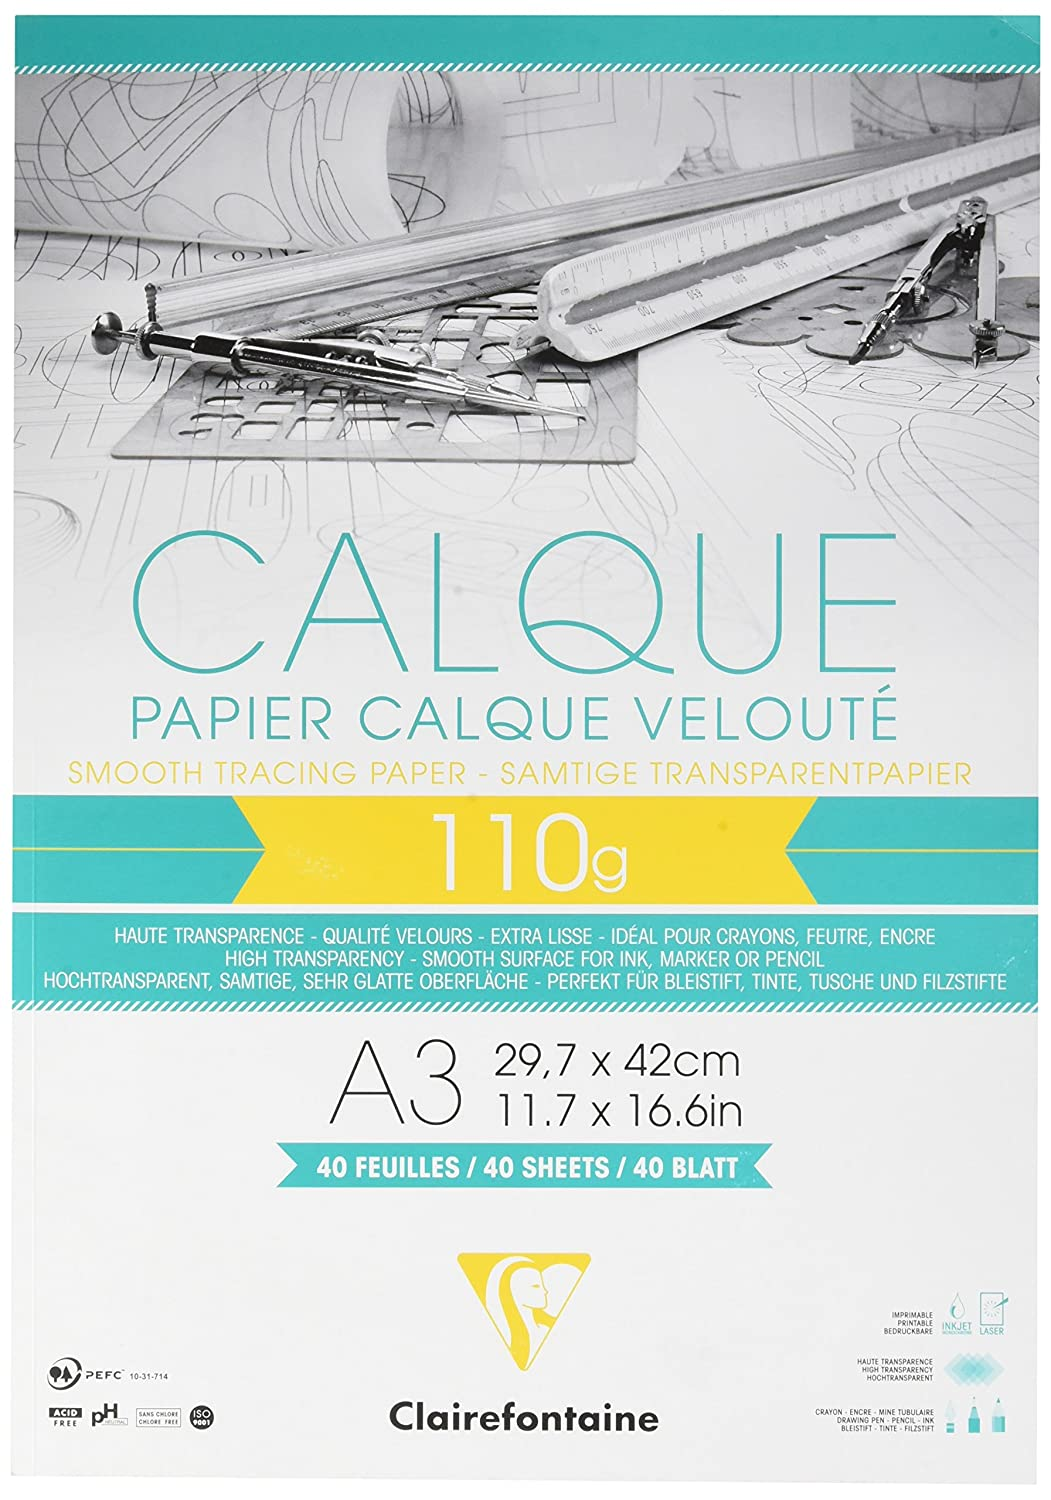 Clairefontaine 0.375 x 20 m Tracing Paper Roll, 110 g 975110C